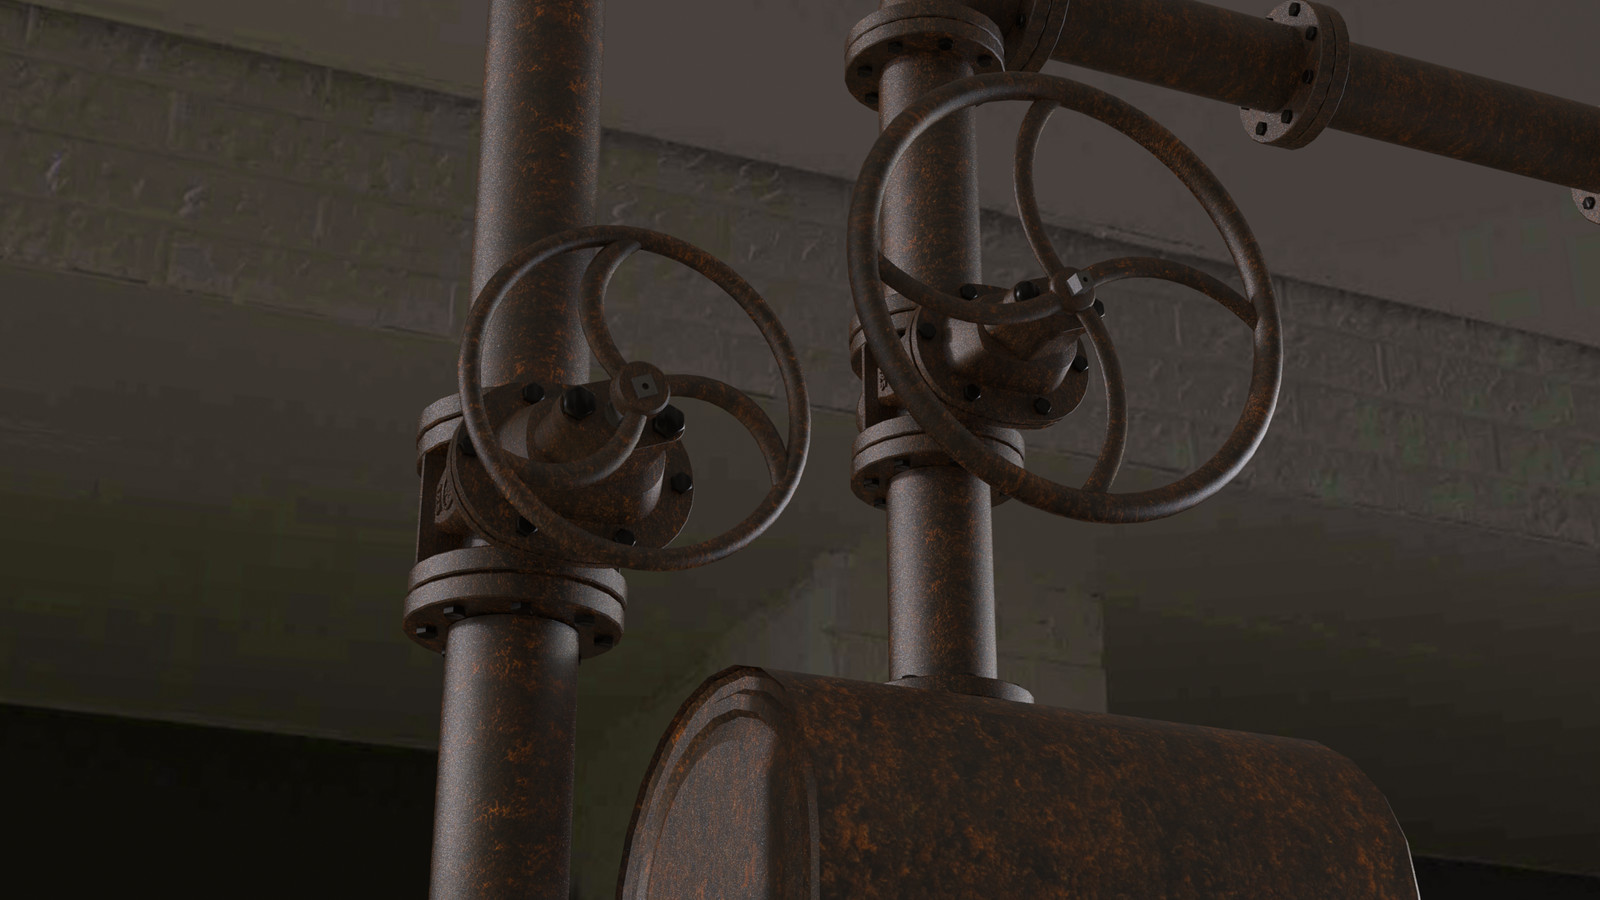 Hydrochloric Acid wash/Rusted Cast Iron Ventilation and Plumbing.